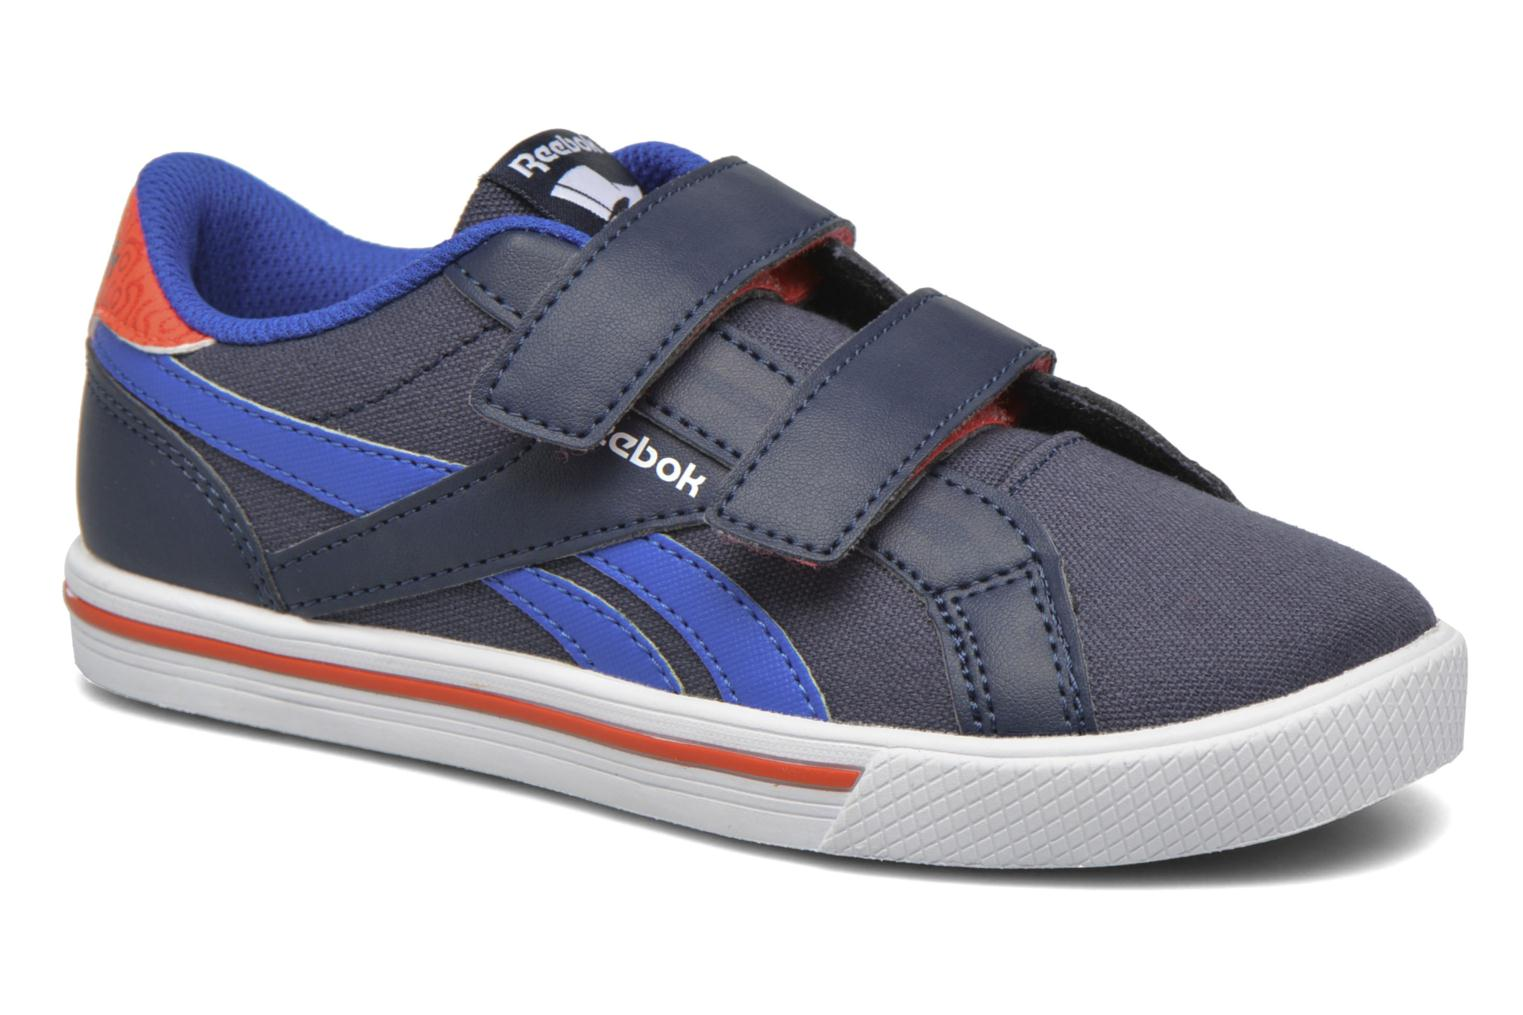 sneakers-reebok-royal-comp-alt-cvs-by-reebok